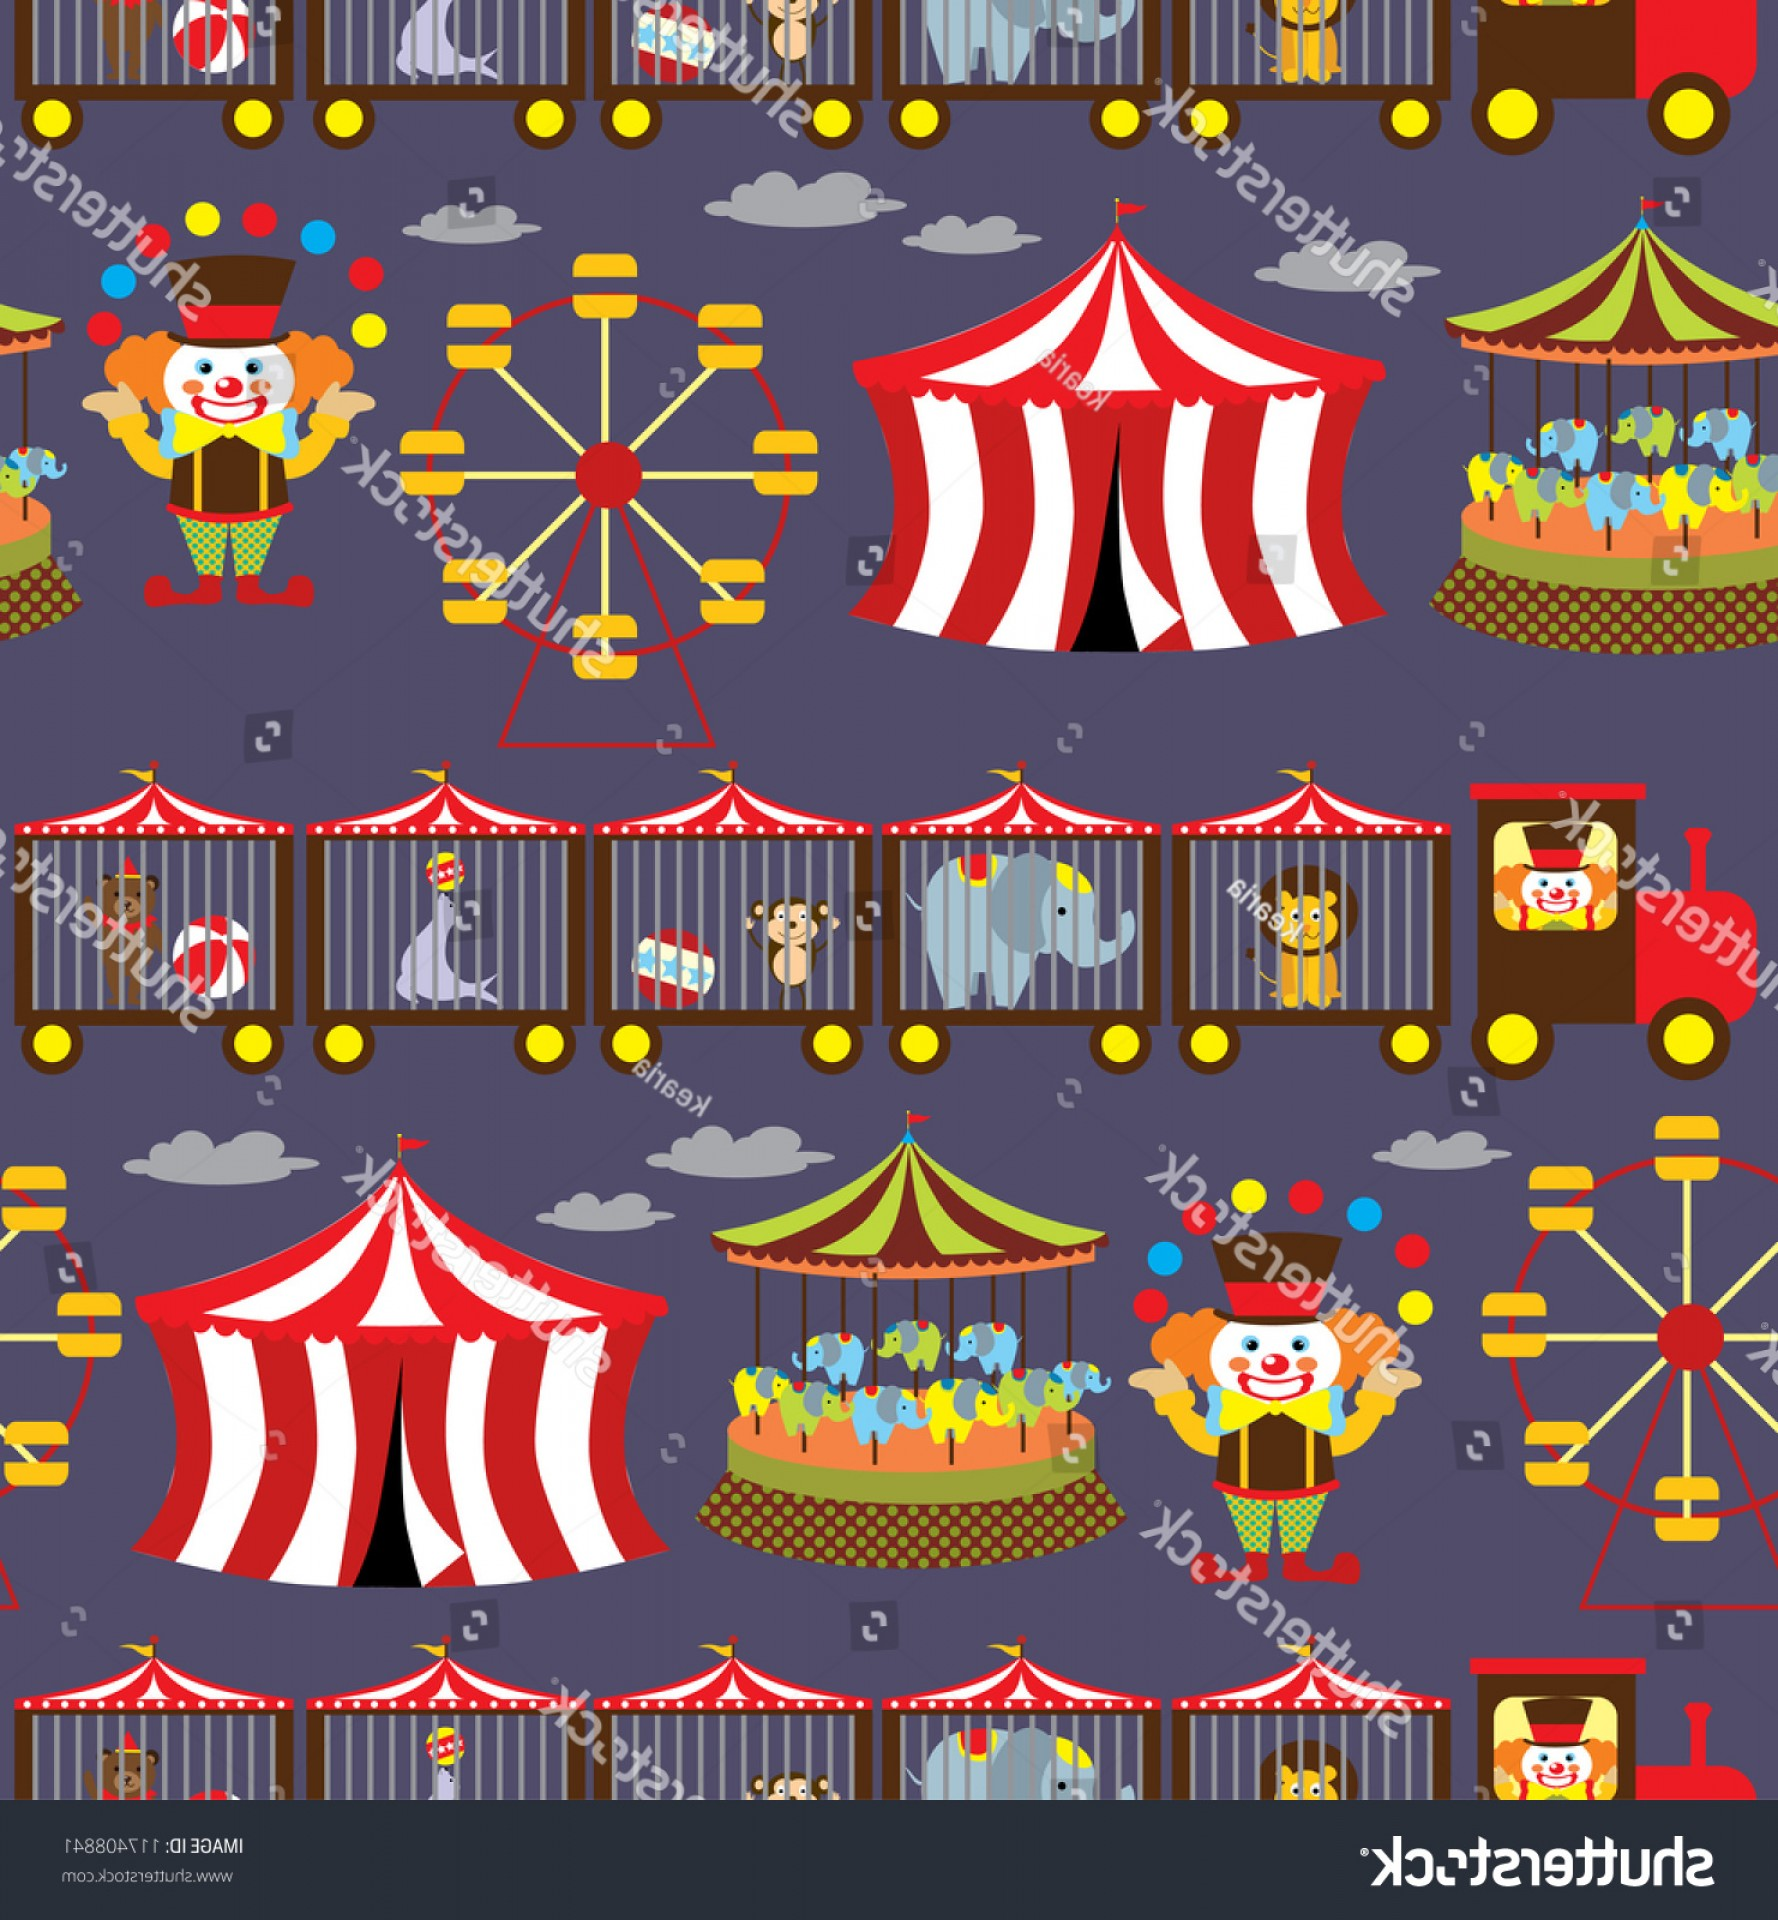 Circus Background Vector: Seamless Circus Background Vector Illustration